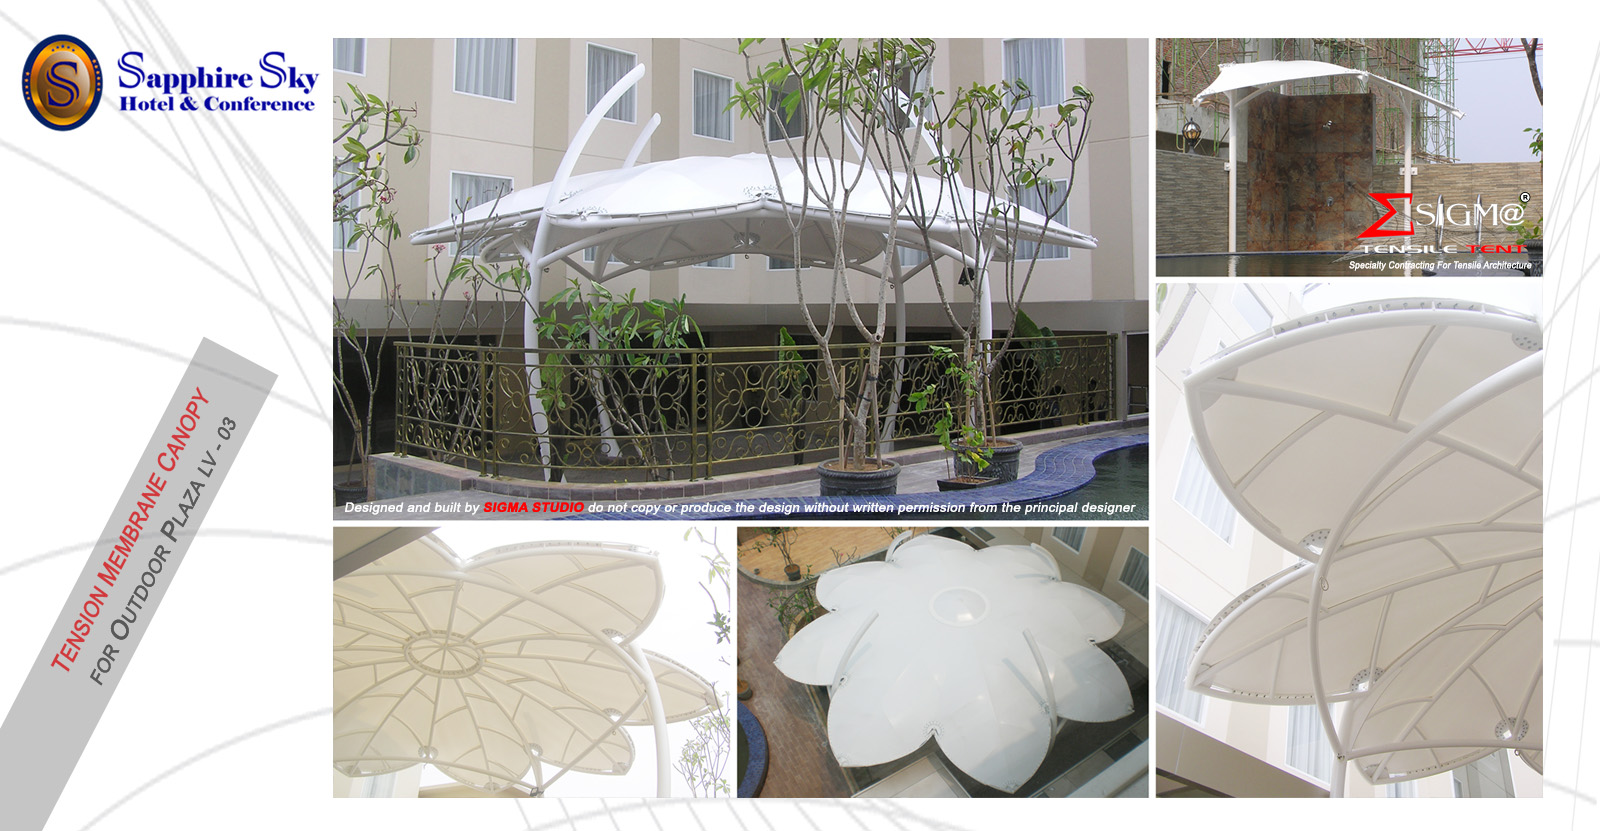 sapphire sky hotel tension membrane canopy for outdoor plaza - Marble Canopy 2015